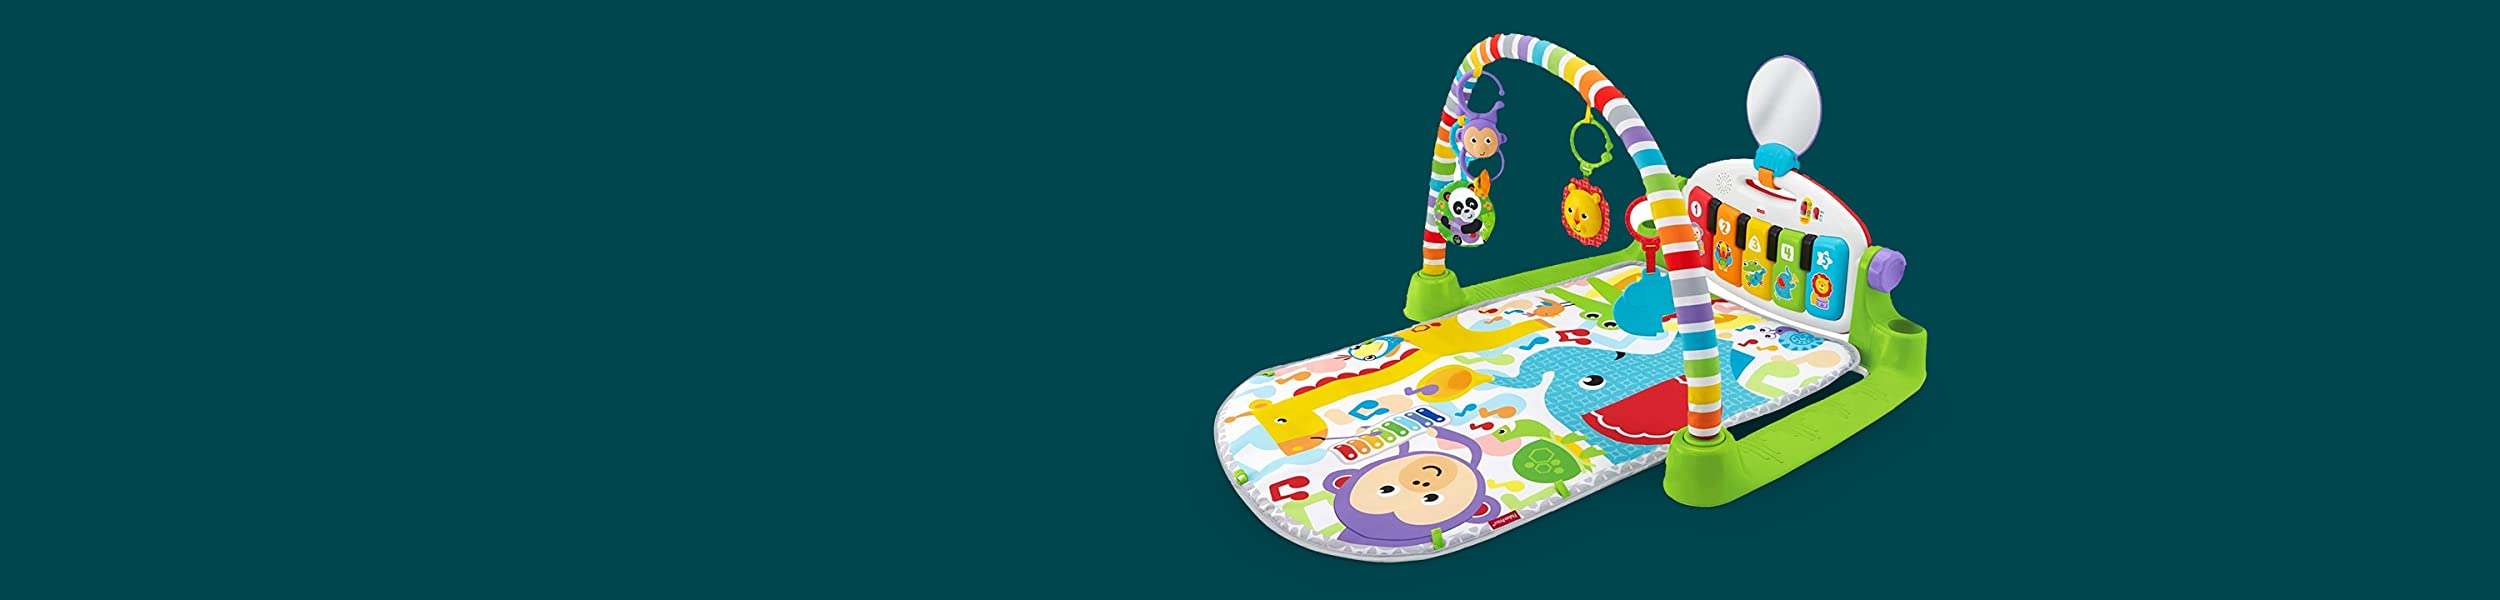 Shop deals on baby products